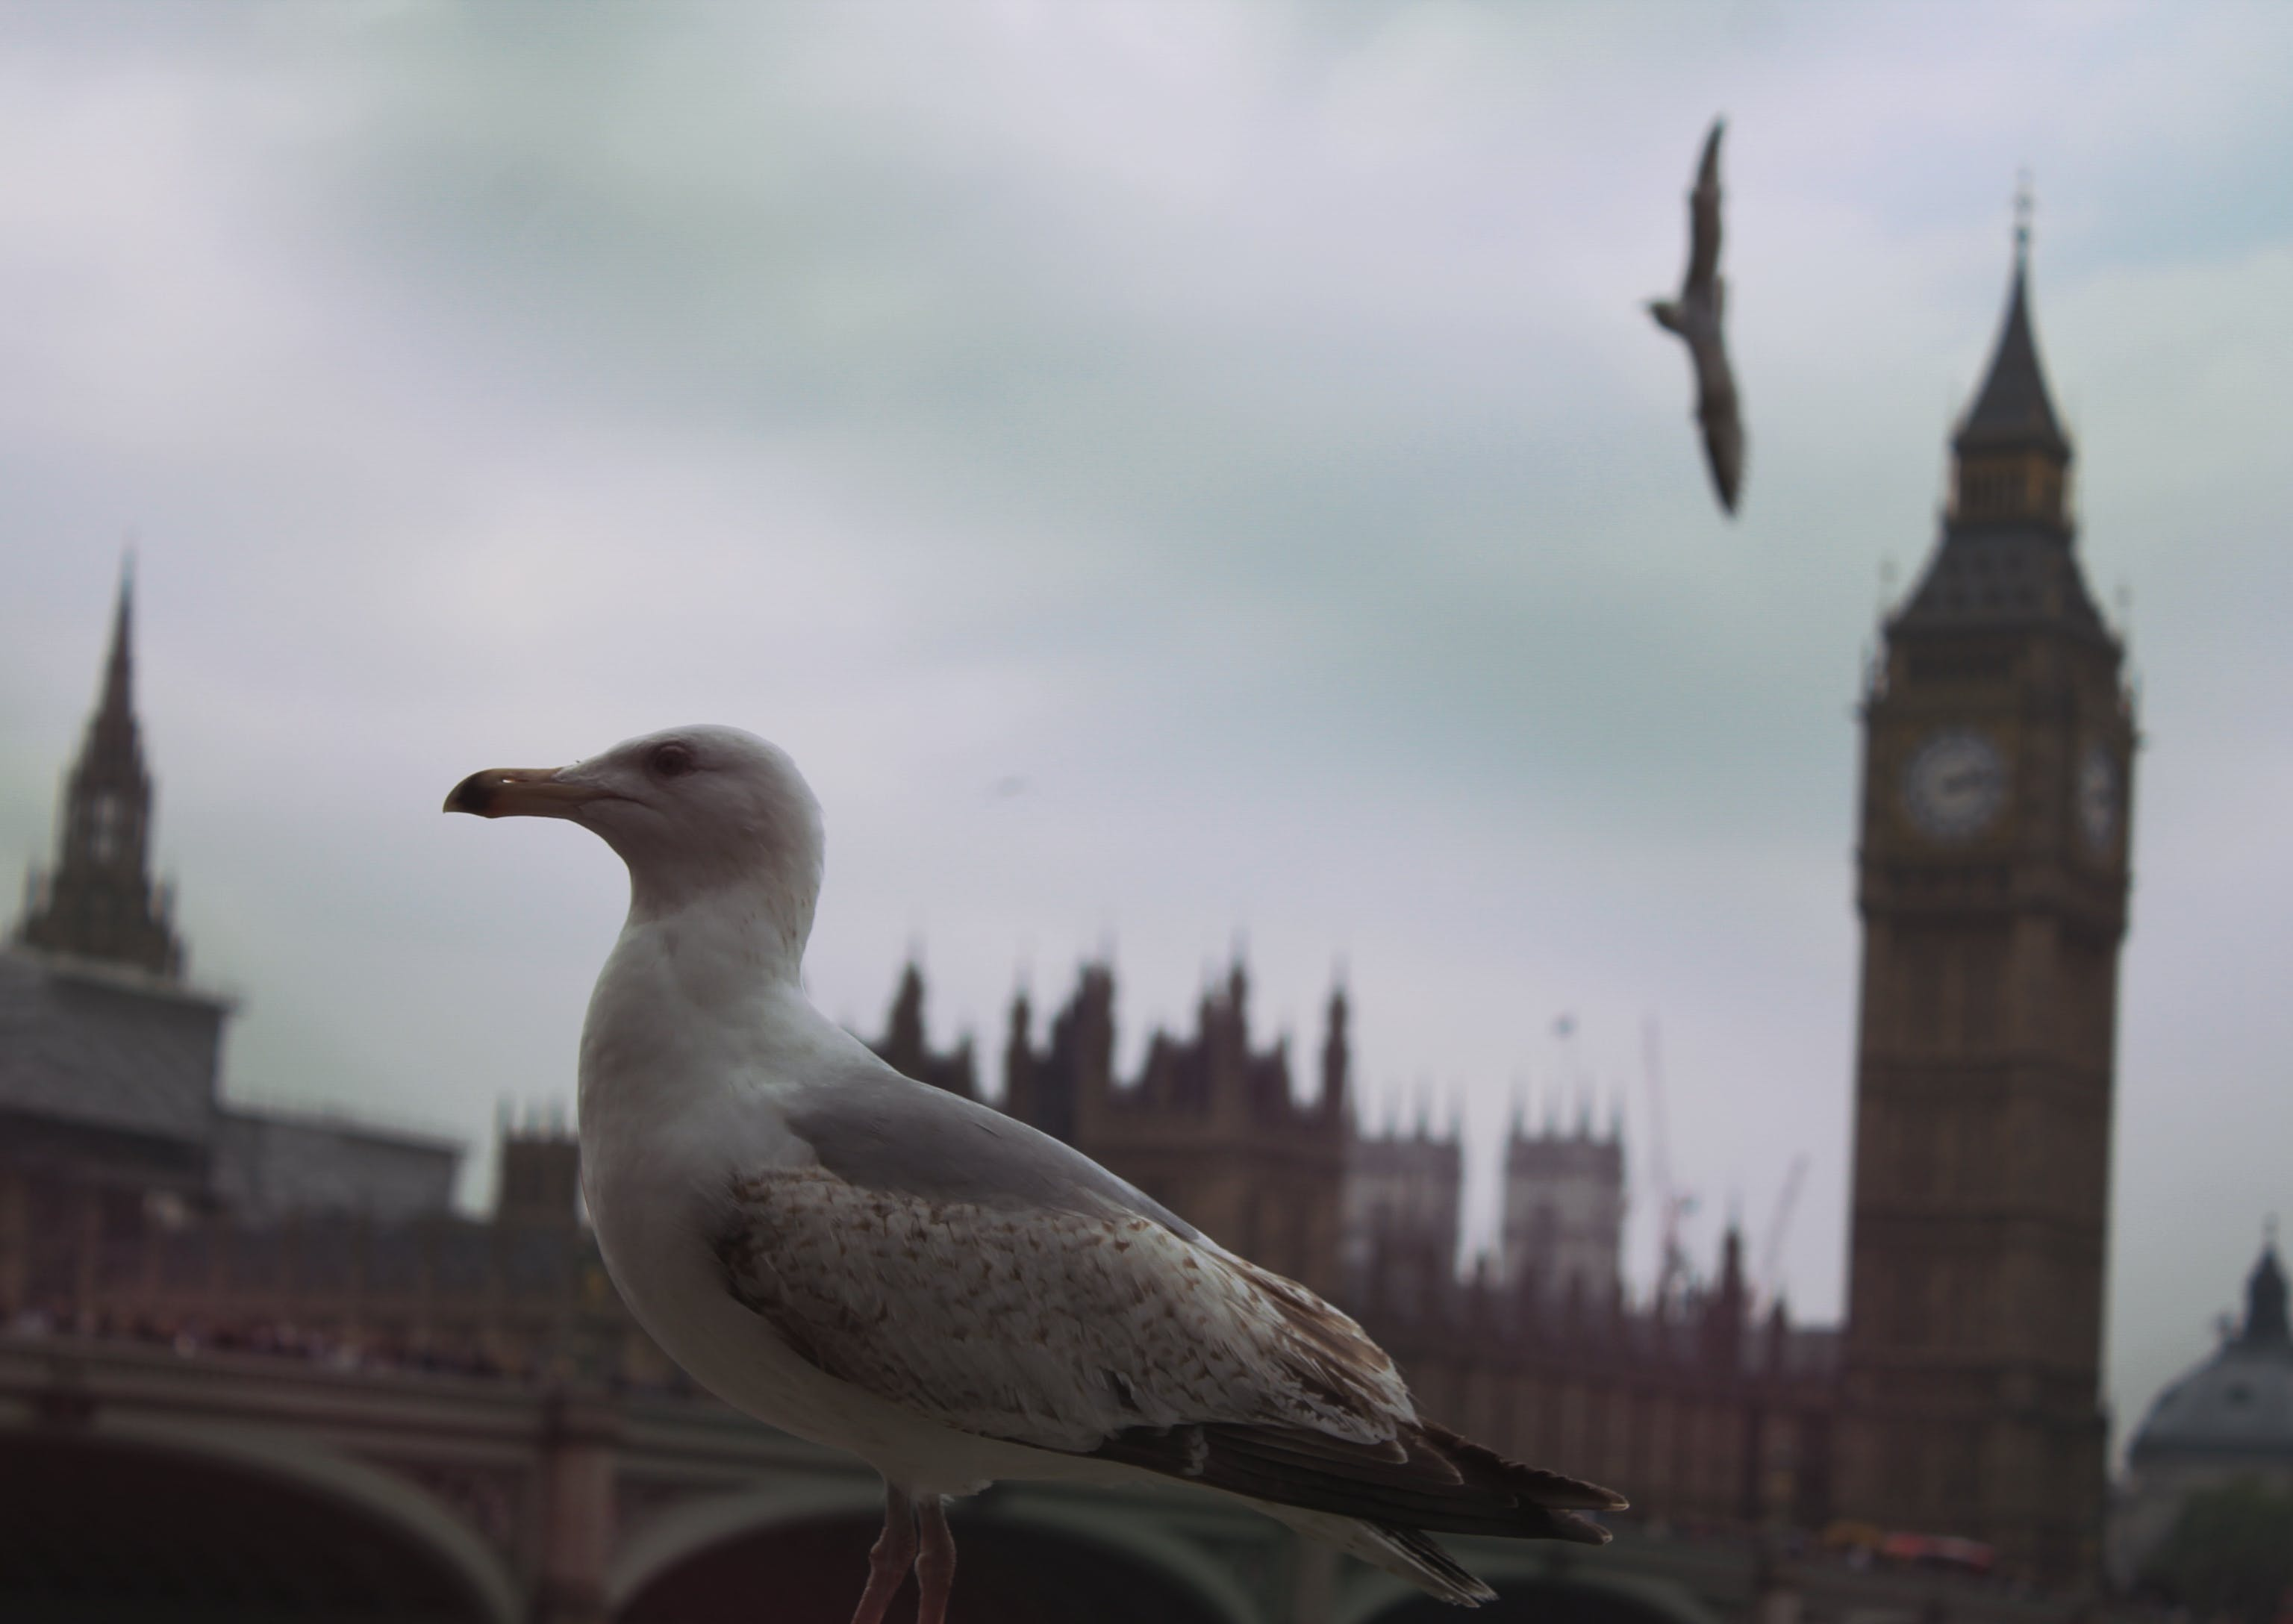 Free stock photo of city, seagull, england, big ben